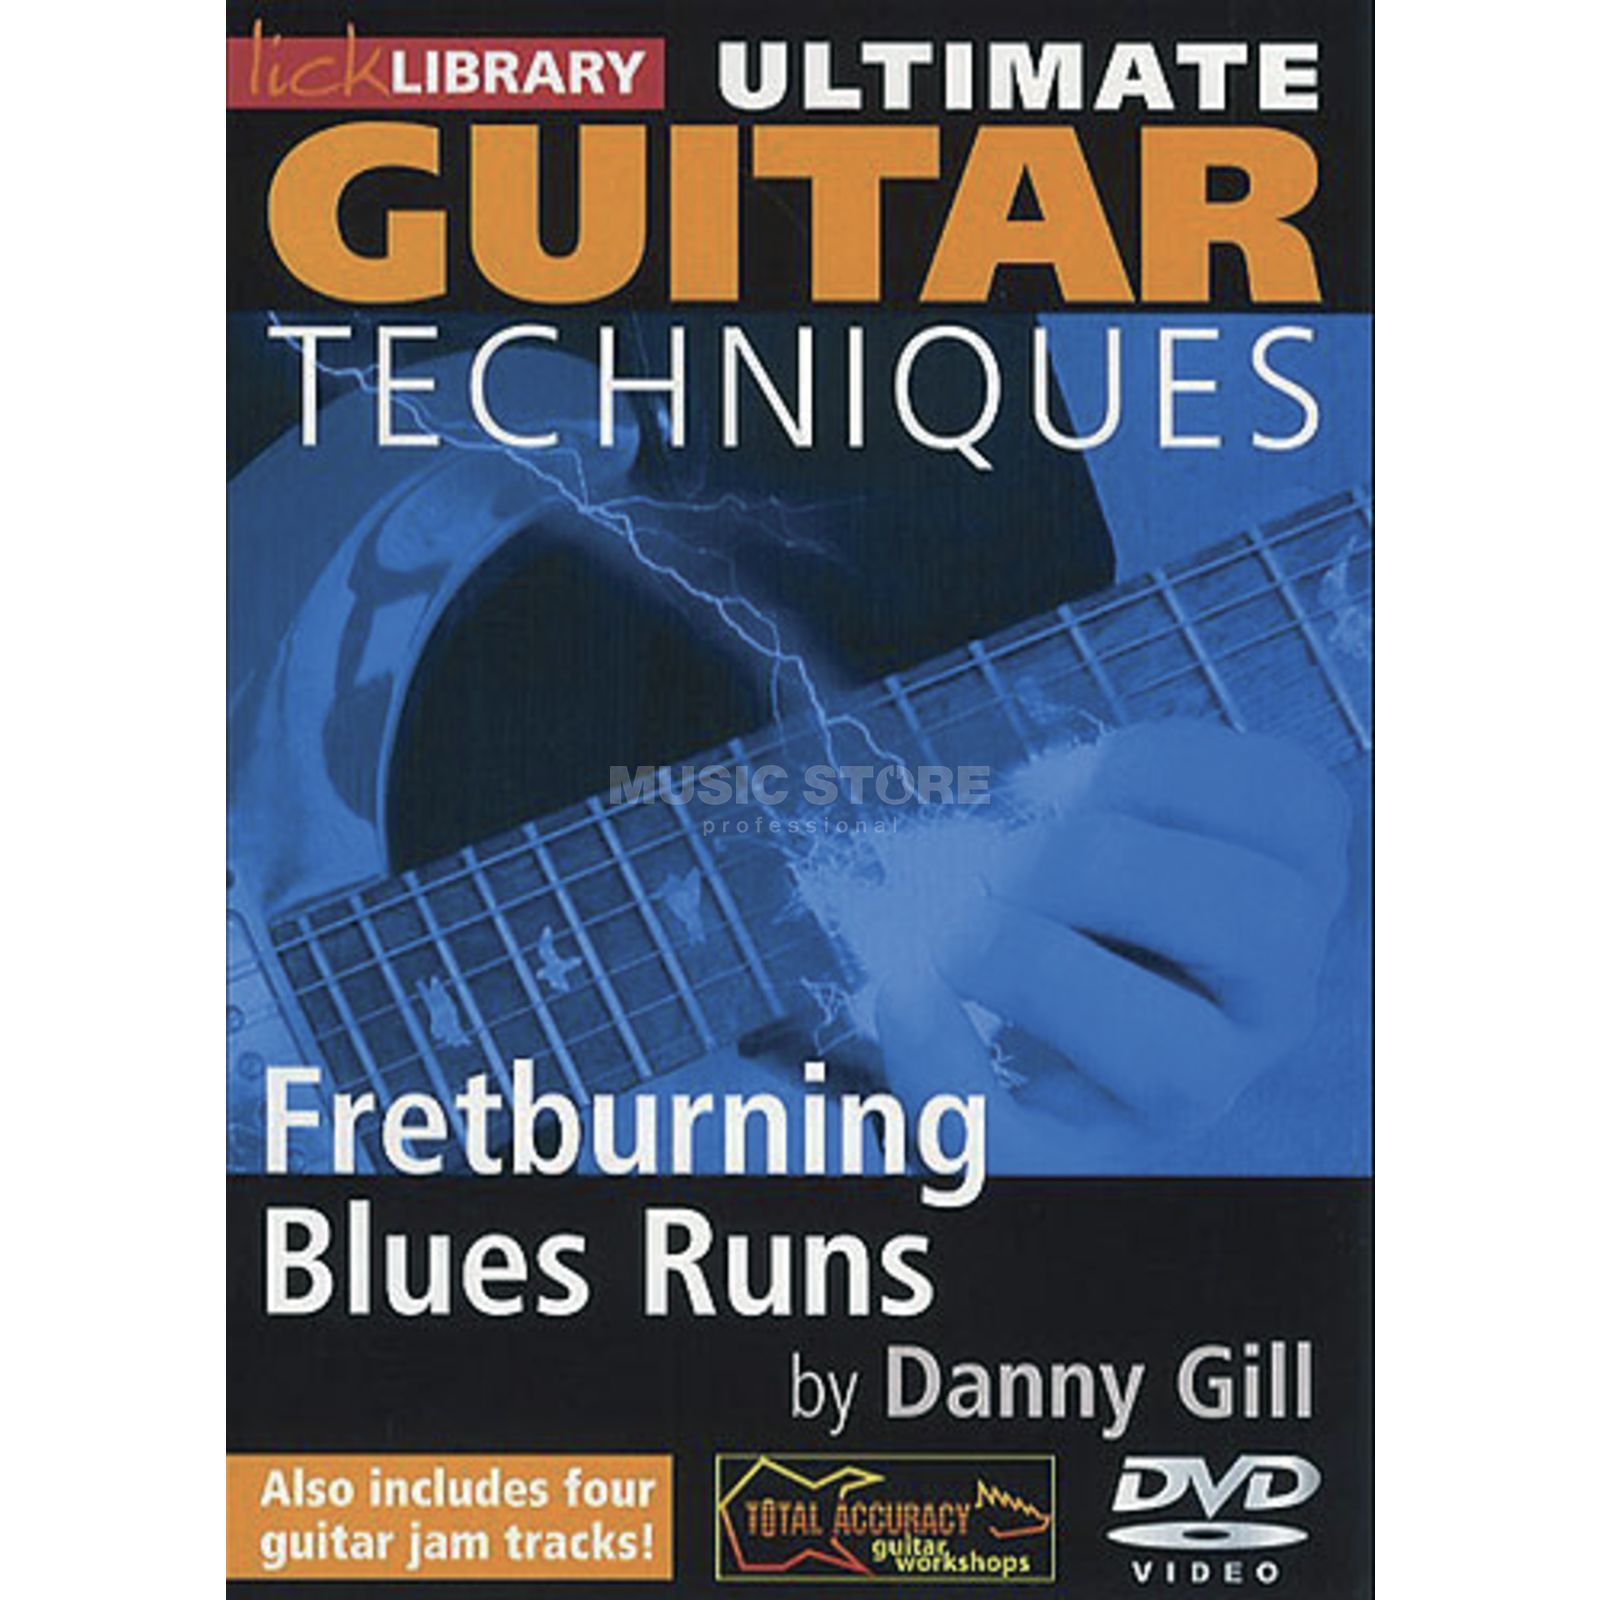 Roadrock International Lick Library: Ultimate Guitar Techniques - Fretburning Blues Runs DVD Produktbillede